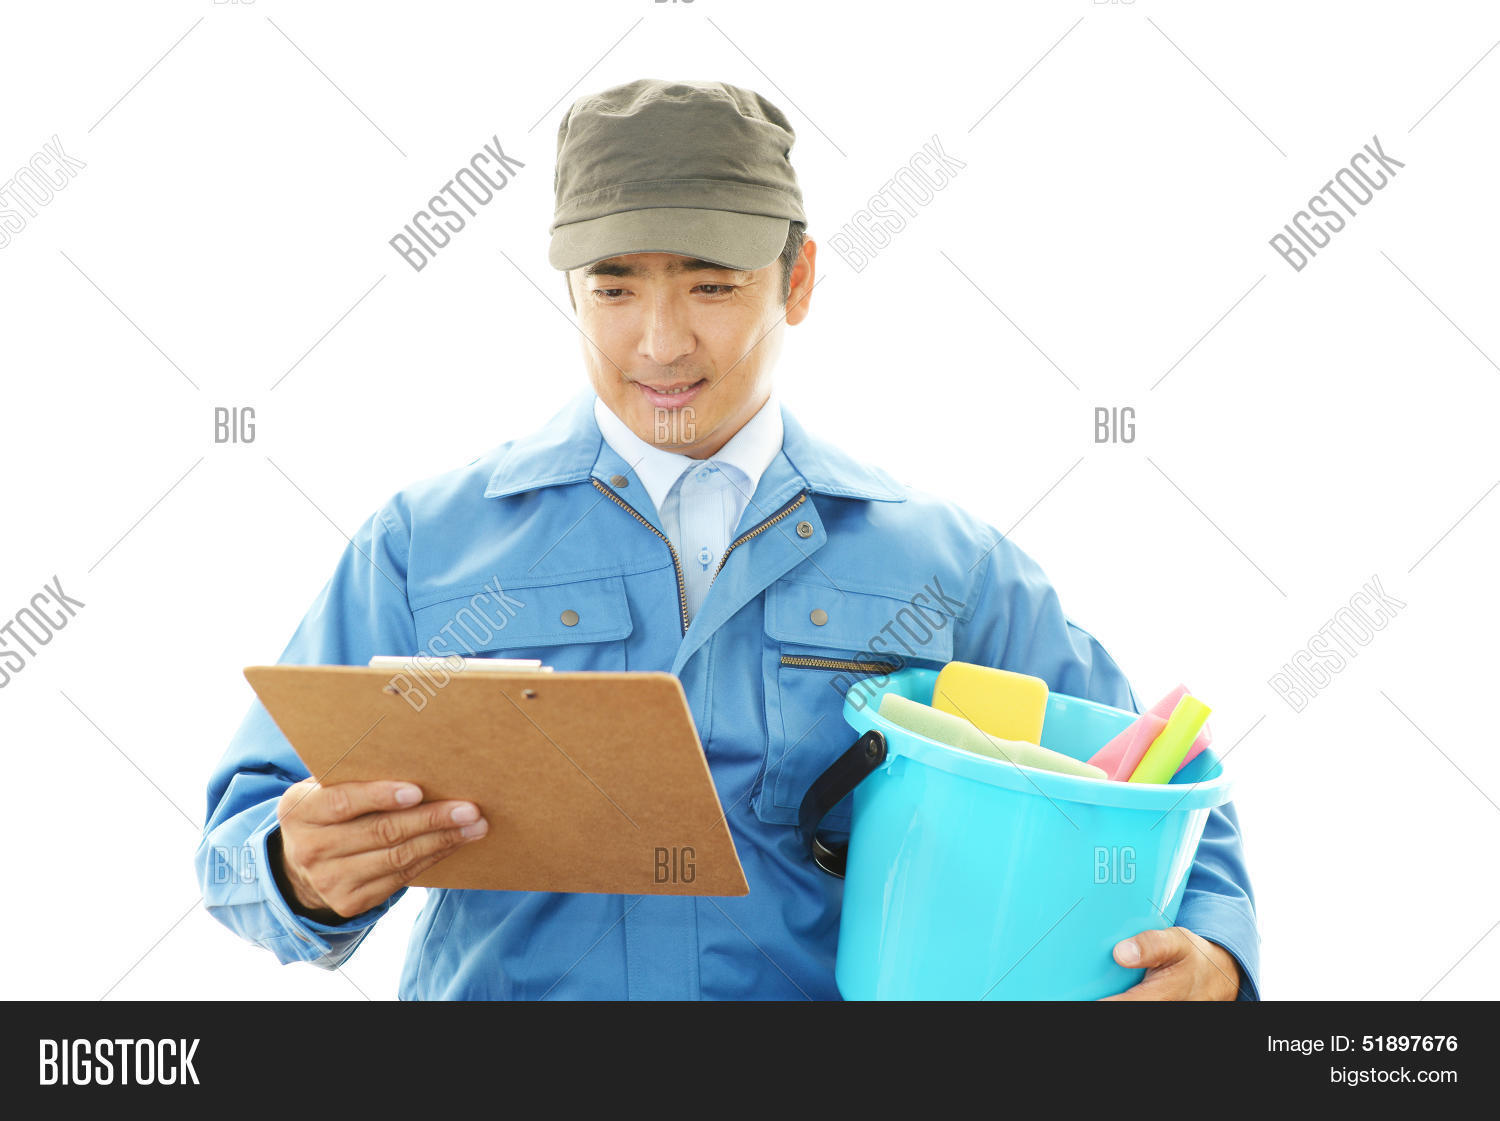 Janitorial Cleaning Image & Photo (Free Trial)   Bigstock